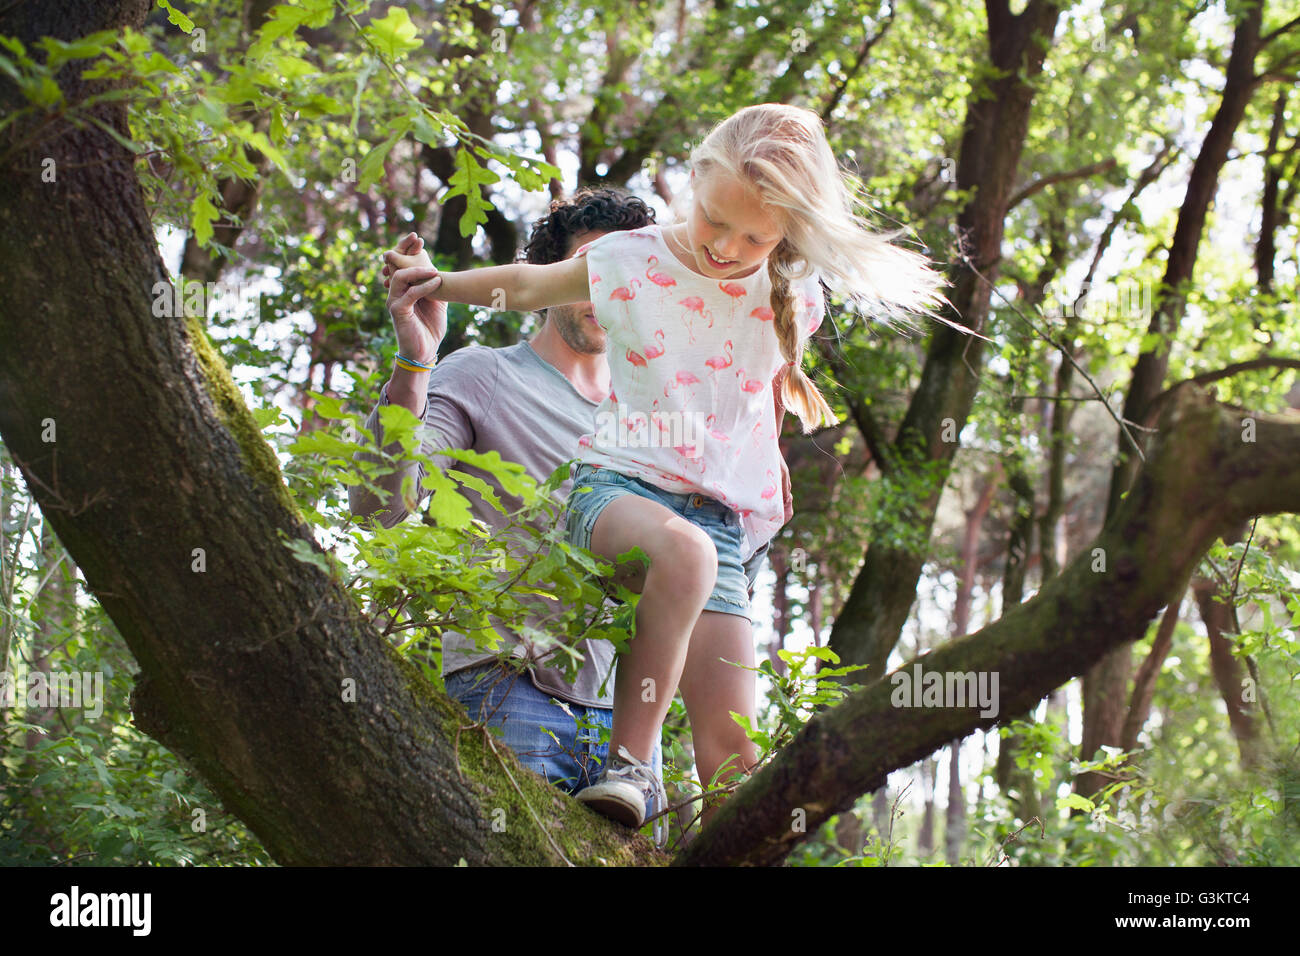 Father helping daughter to climb tree - Stock Image